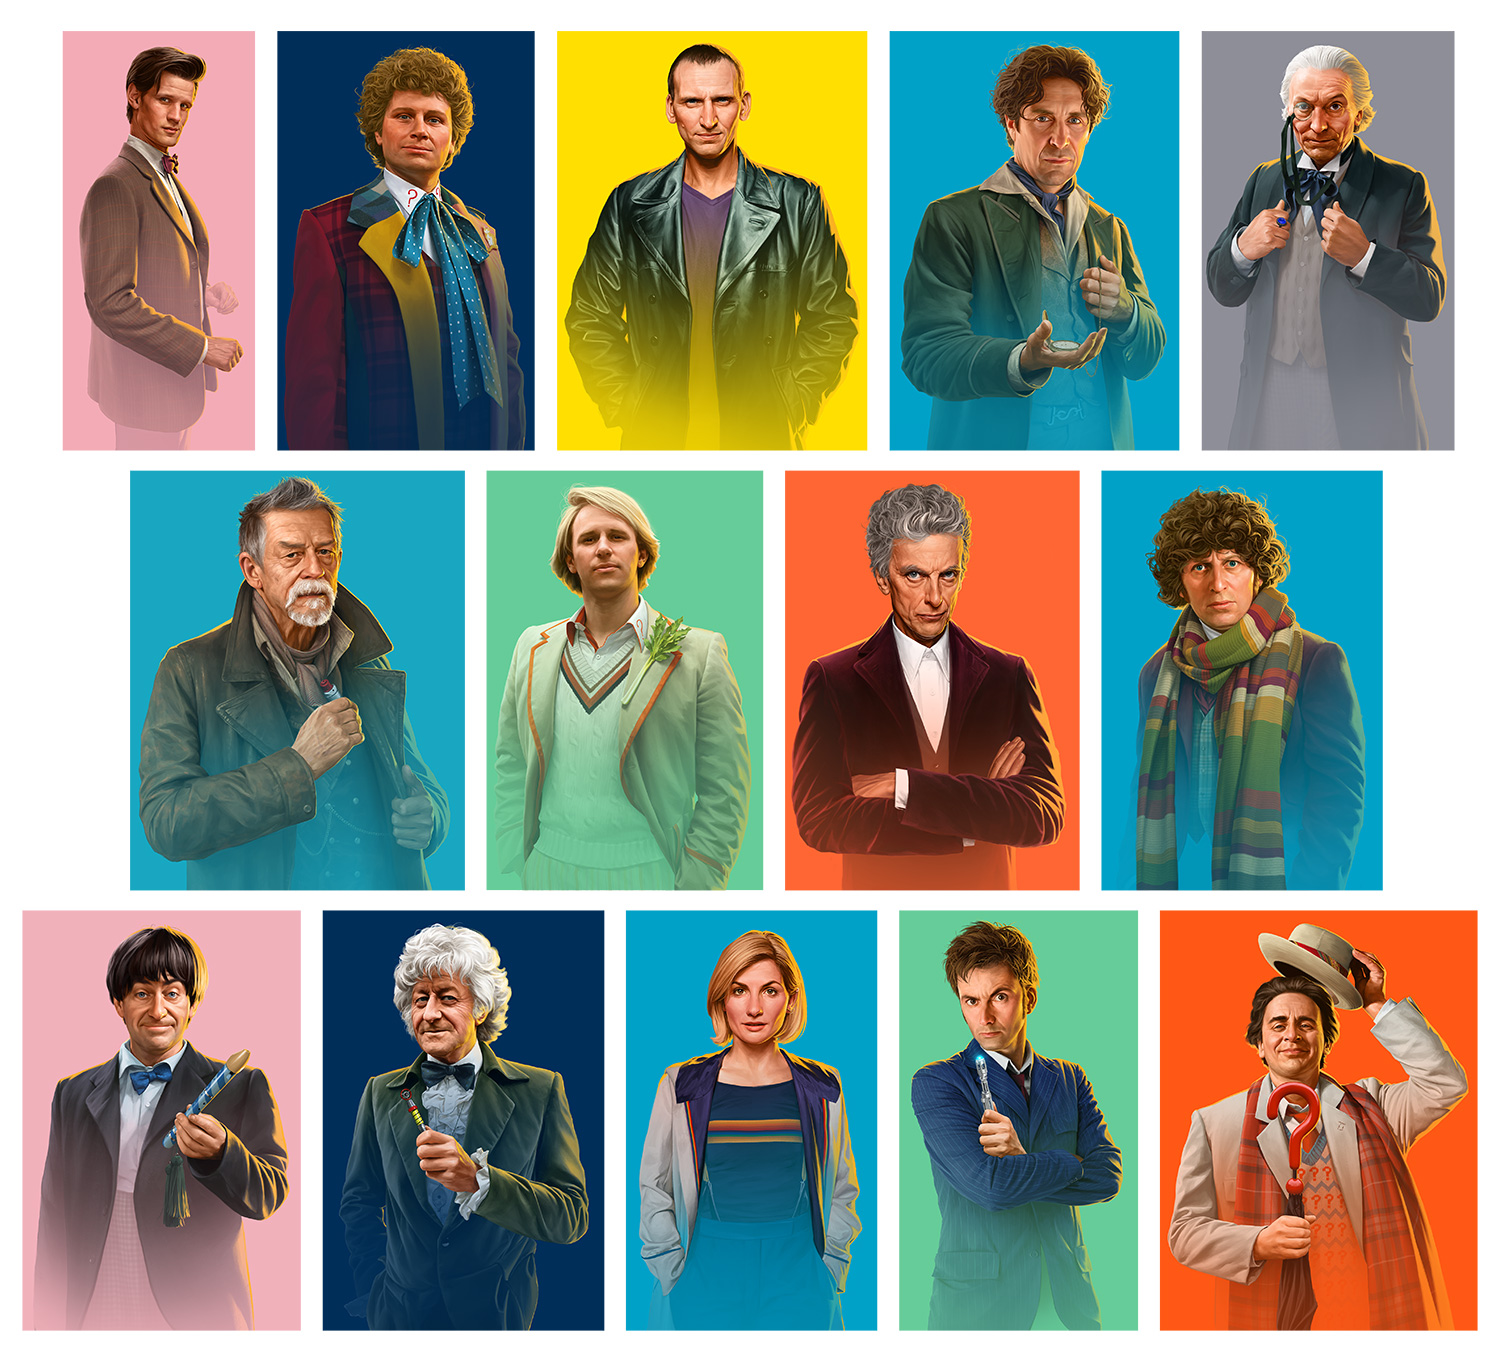 Jeremy Enecio Bbc Releases New Character Portraits Of The